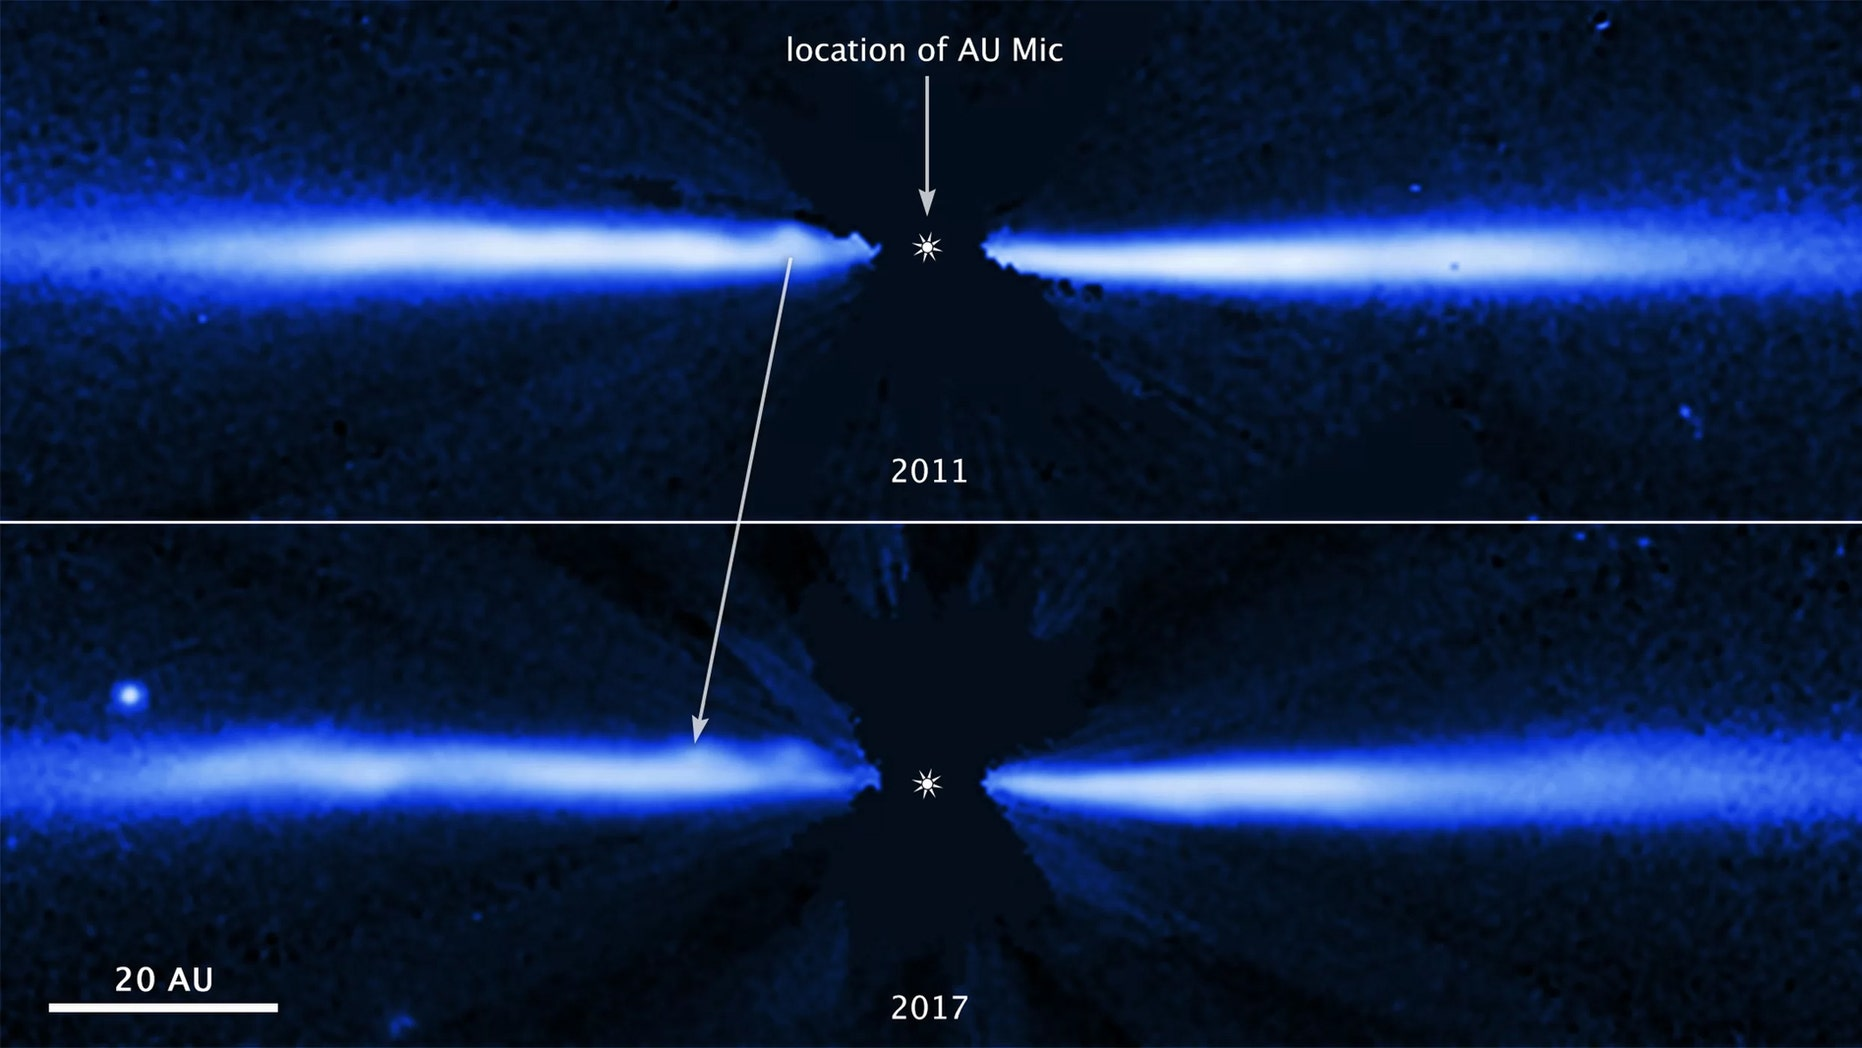 Hubble Space Telescope images of a waste hoop surrounding a star called AU Microscopii uncover a same structure migrating outward. Credit: NASA, ESA, J. Wisniewski (University of Oklahoma), C. Grady (Eureka Scientific) and G. Schneider (Steward Observatory)